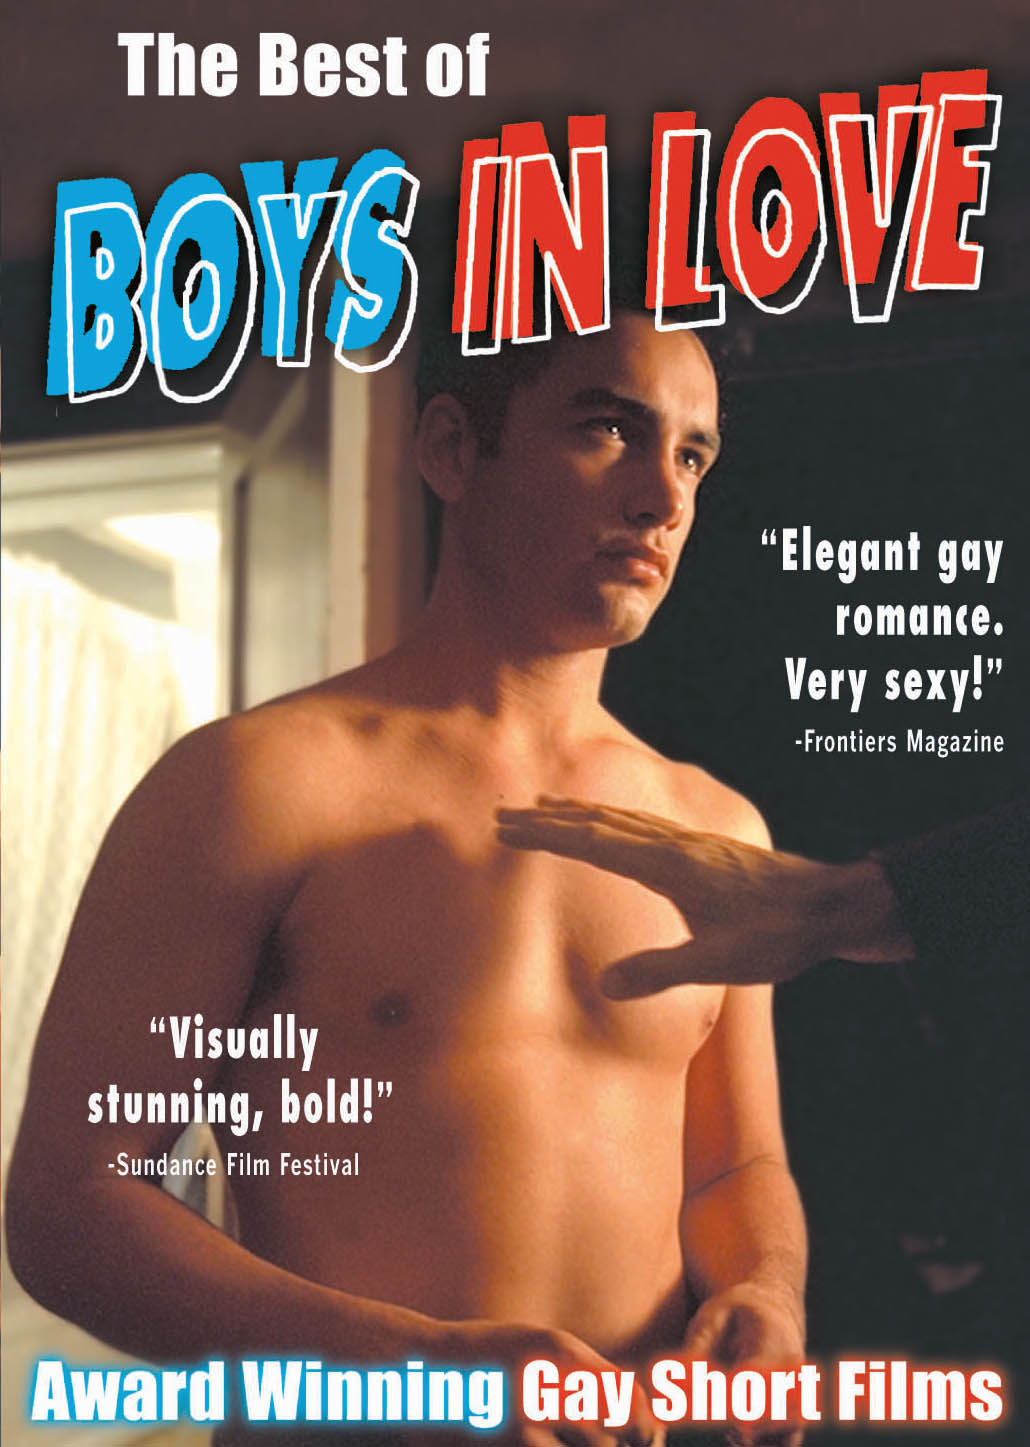 Male gay movies